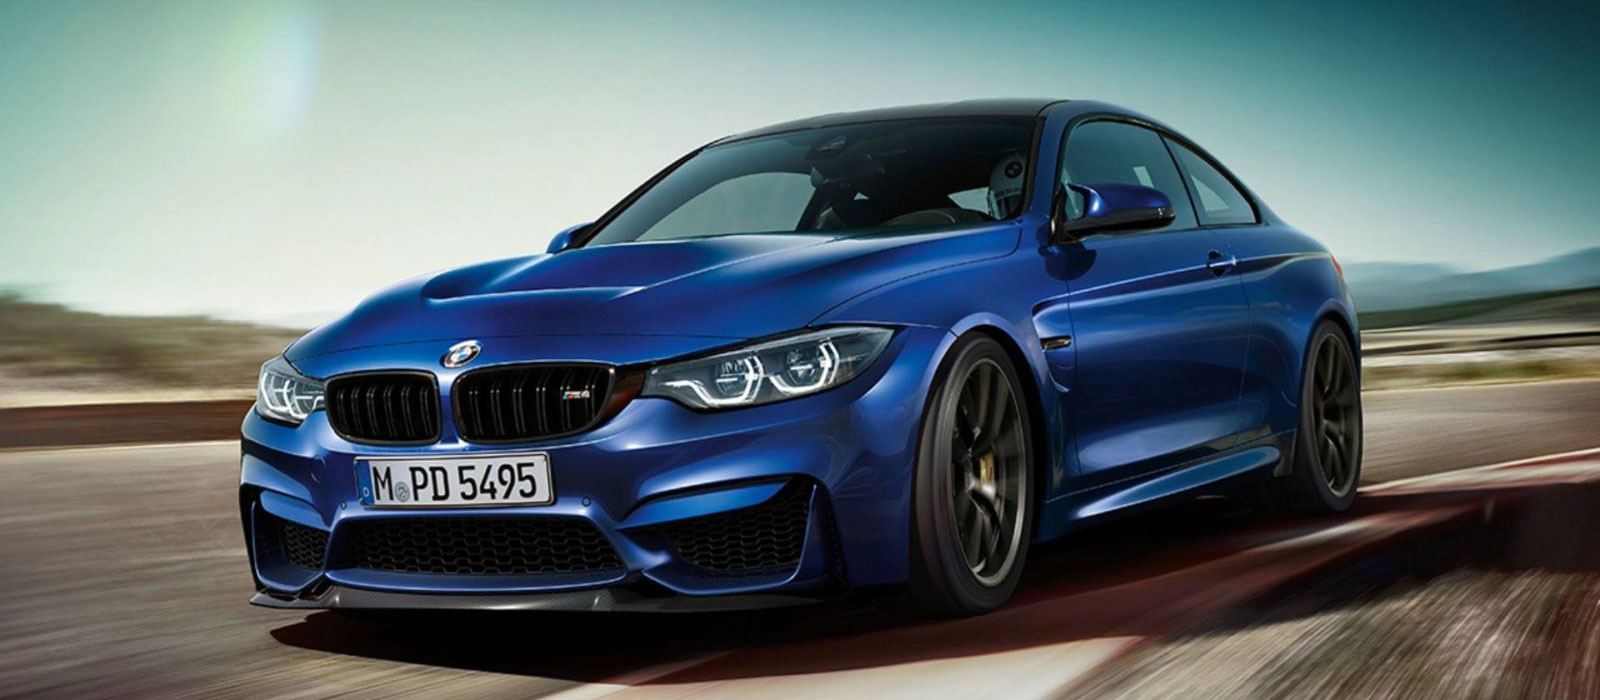 BMW Wagner - BMW M4 Coupé Angebot